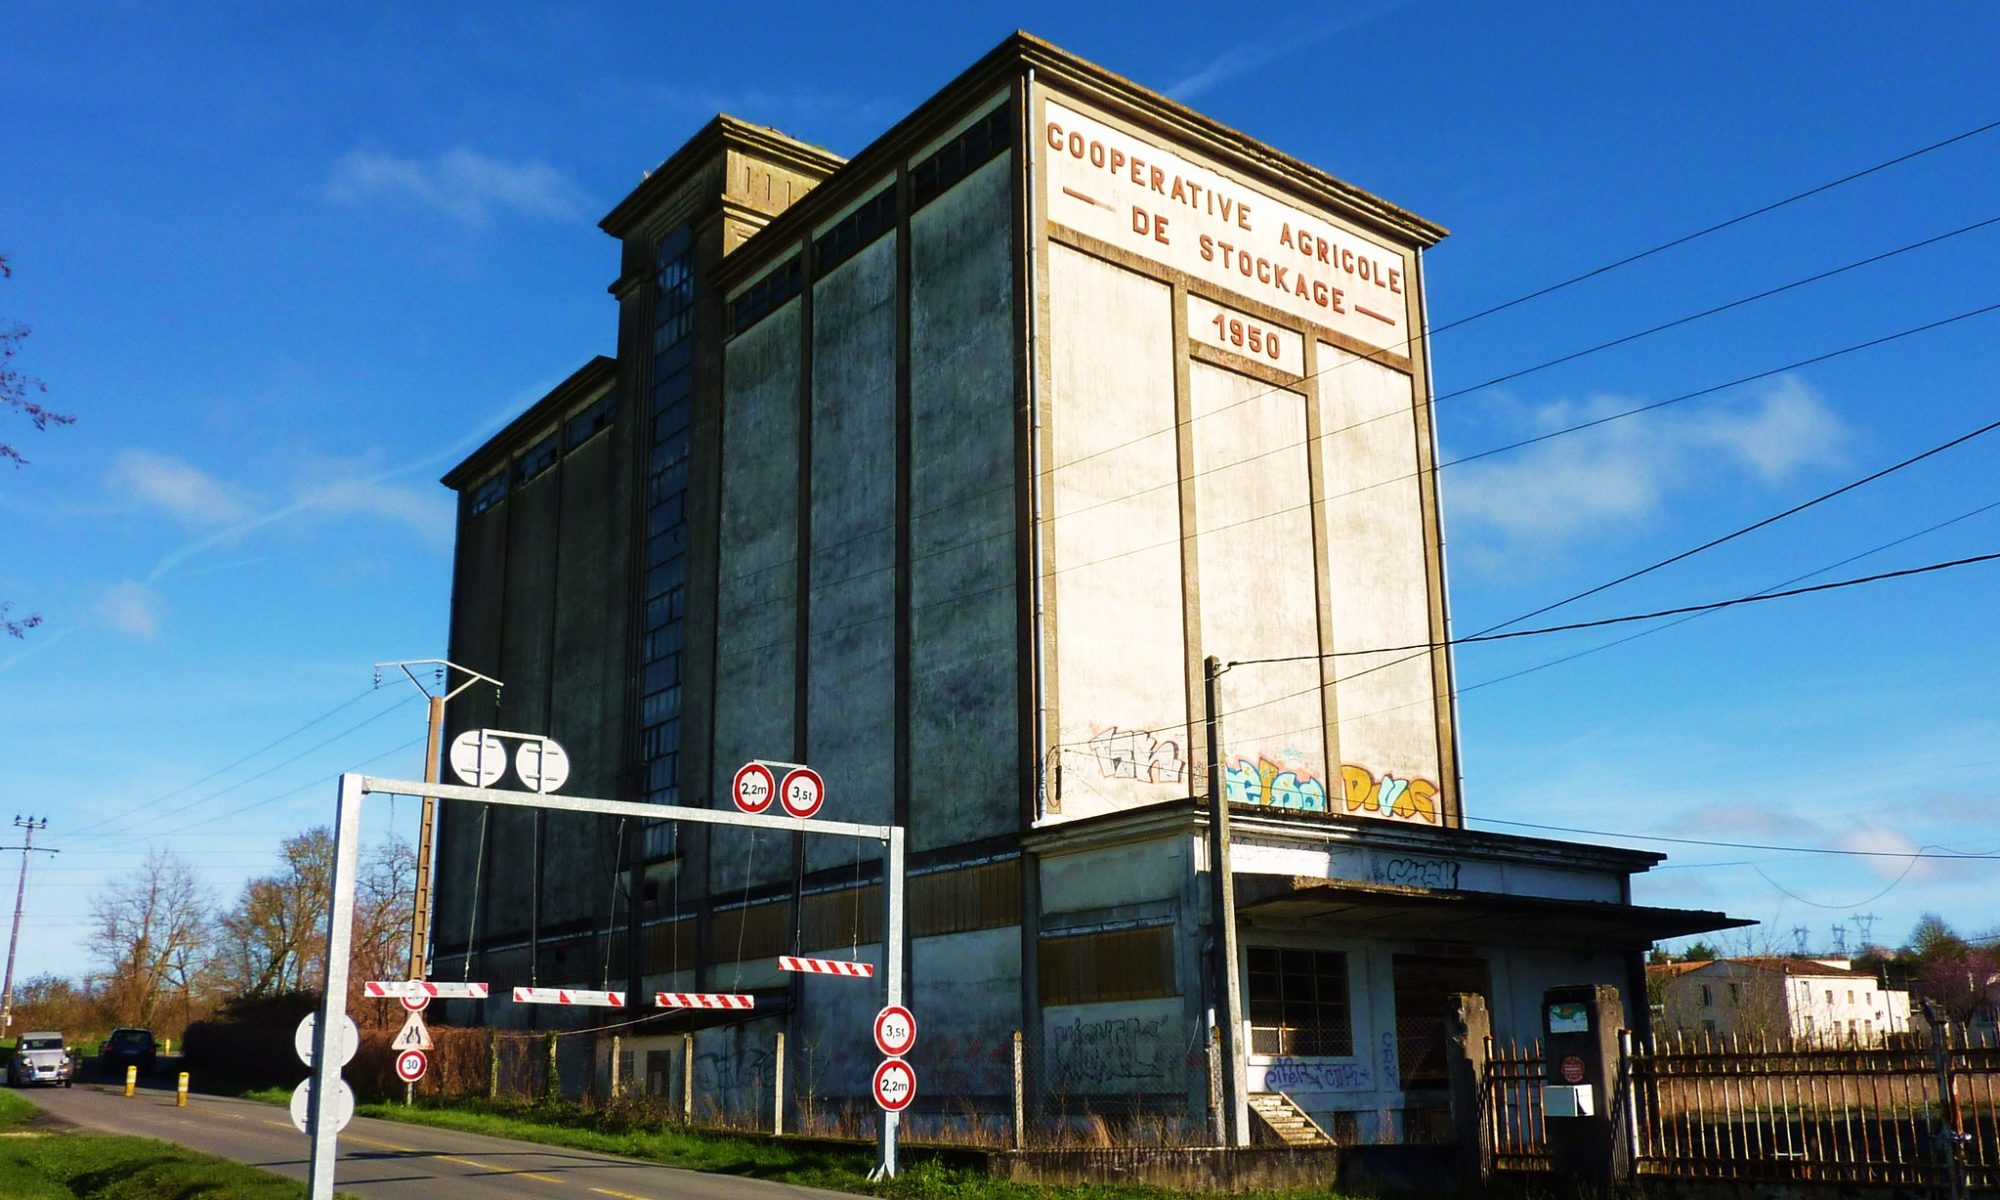 Saintes, ancienne coopérative agricole, CC-by-nc-nd par Thierry Llansades https://flic.kr/p/msM1mk